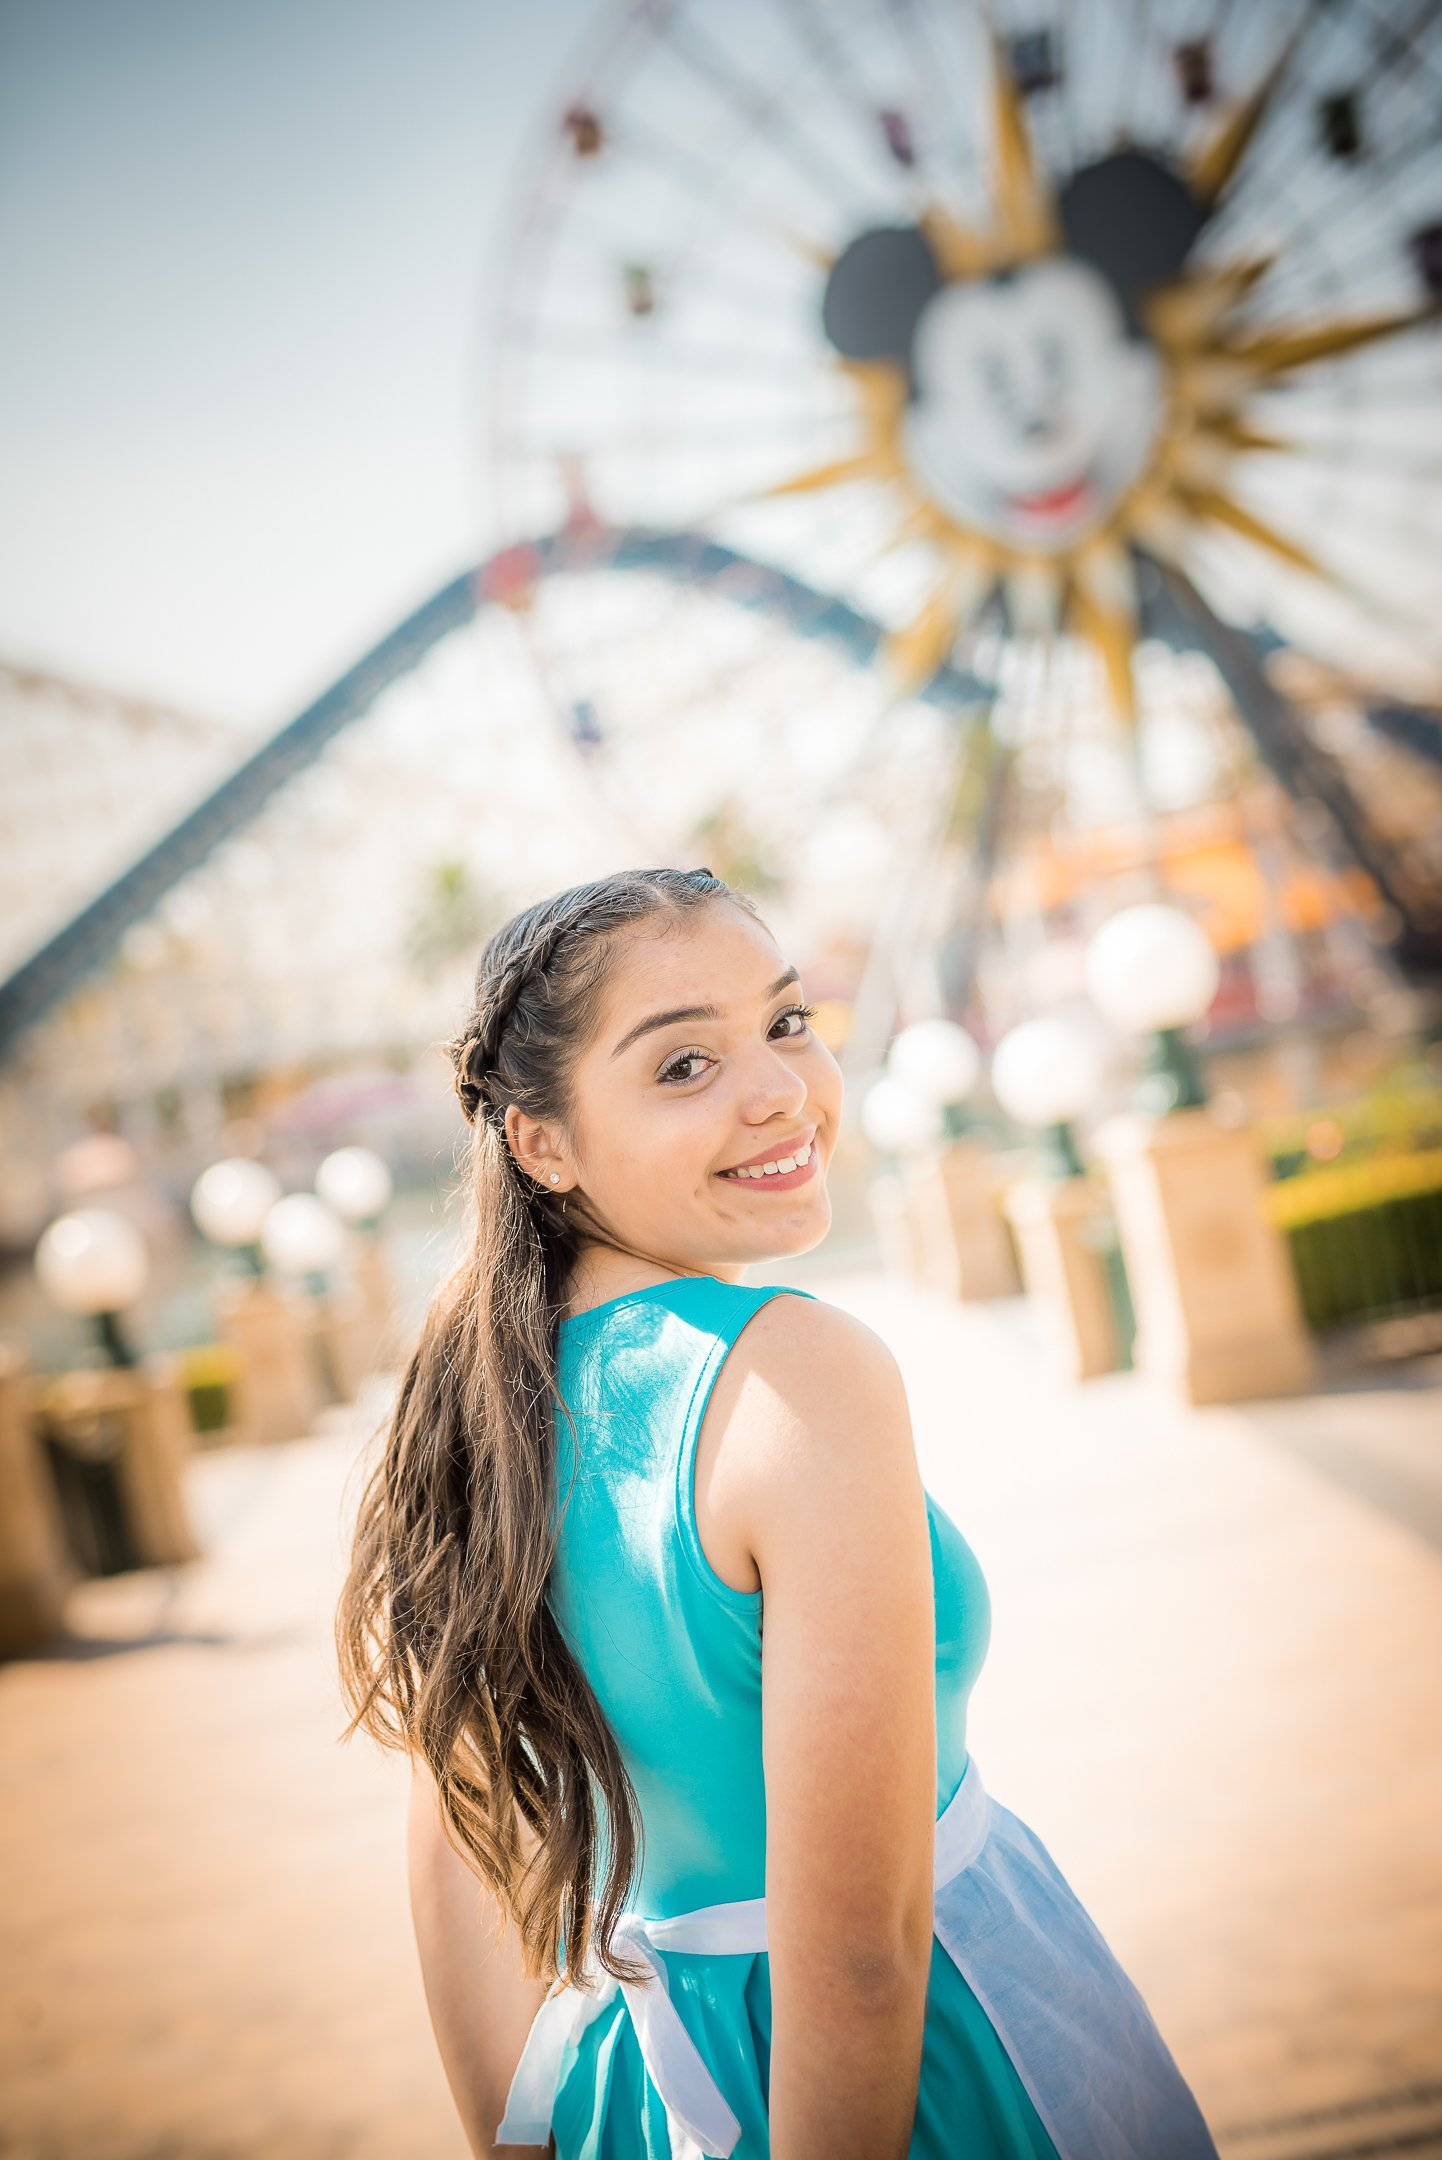 Disneyland Quinceanera photo session - Overlooking the Mickey Wheel at Pixar Pier in Disney's California Adventure Park in Disneyland, CA